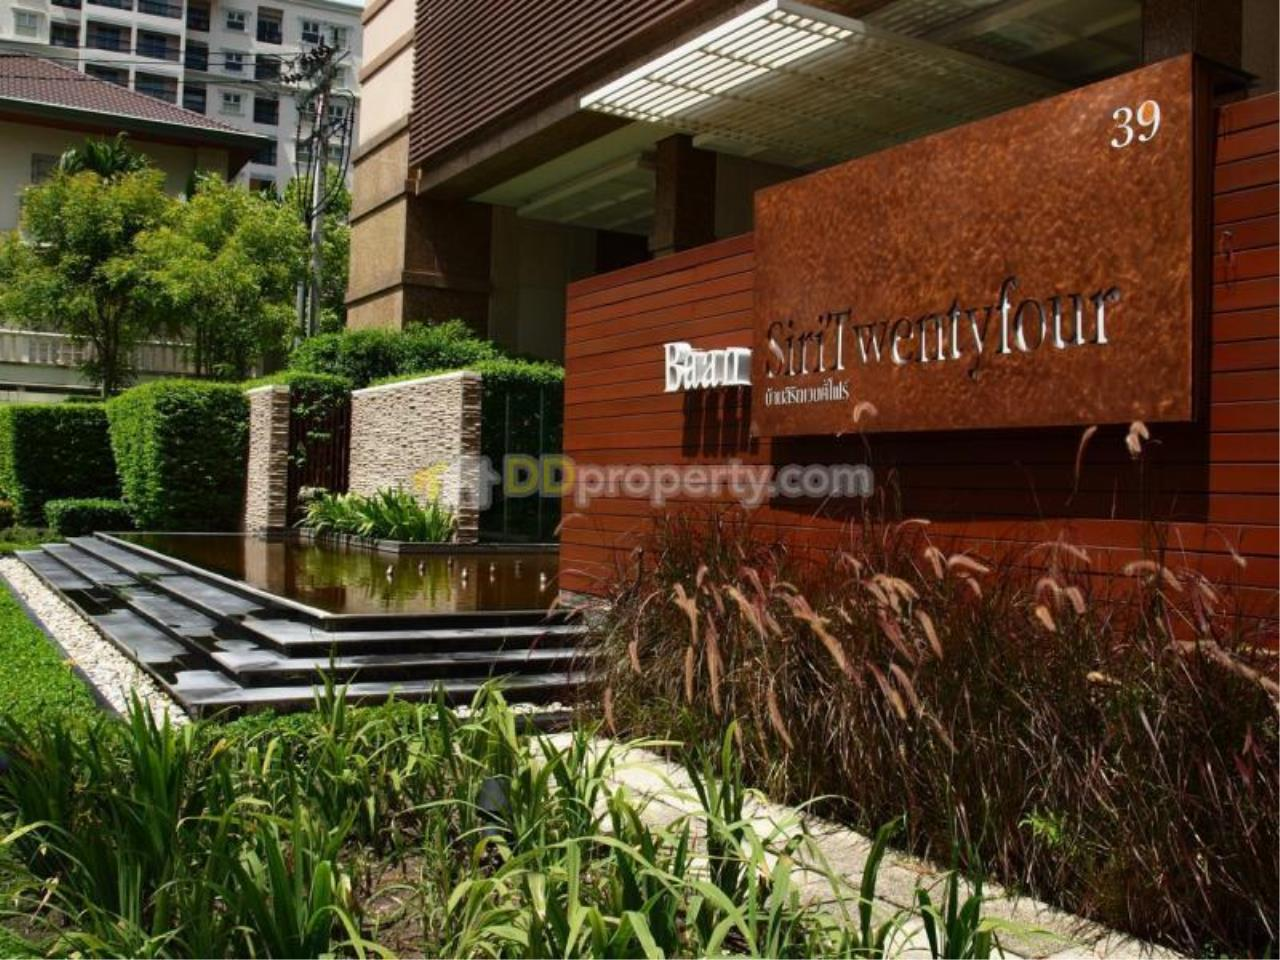 Quality Life Property Agency's Baan For Rent Codo BaanSiri 24, Corner Unit Wide Area On High Floor 1